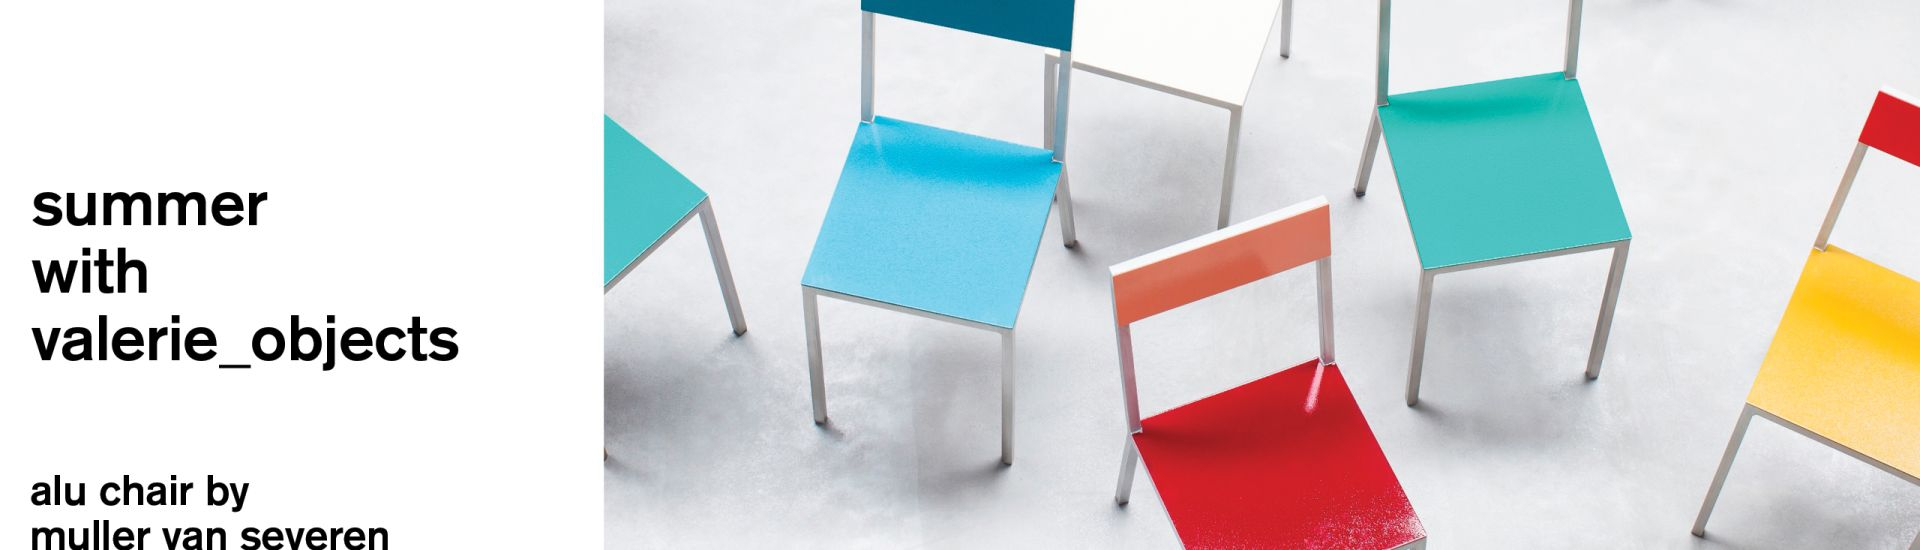 alu chairs by muller van severen